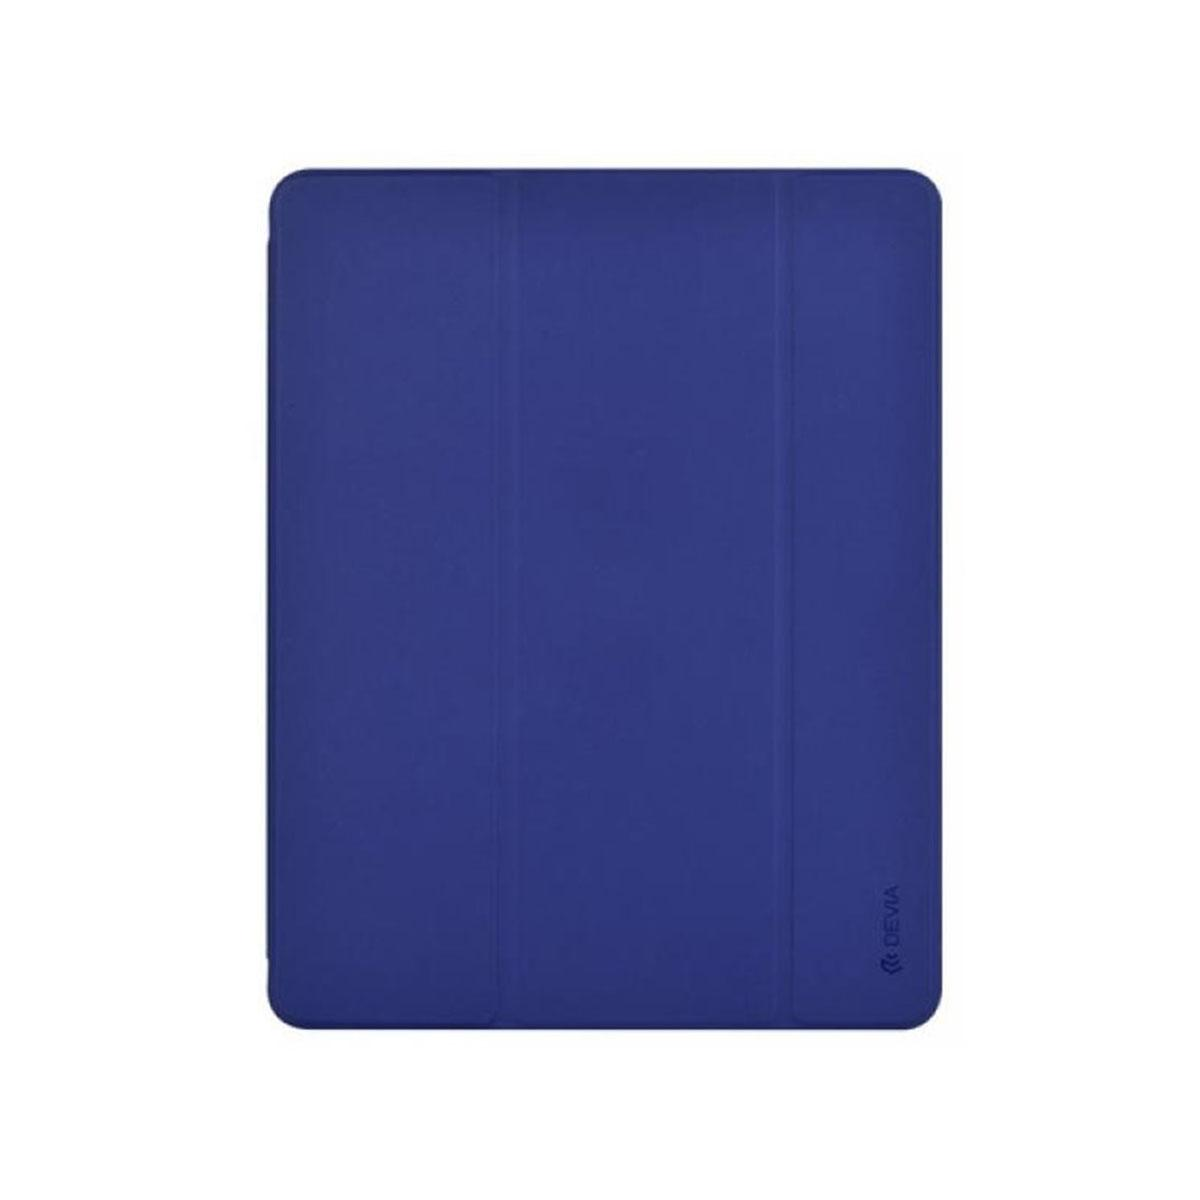 Devia iPad Air 4 10.9-inch Leather Case with Pencil Slot -Blue